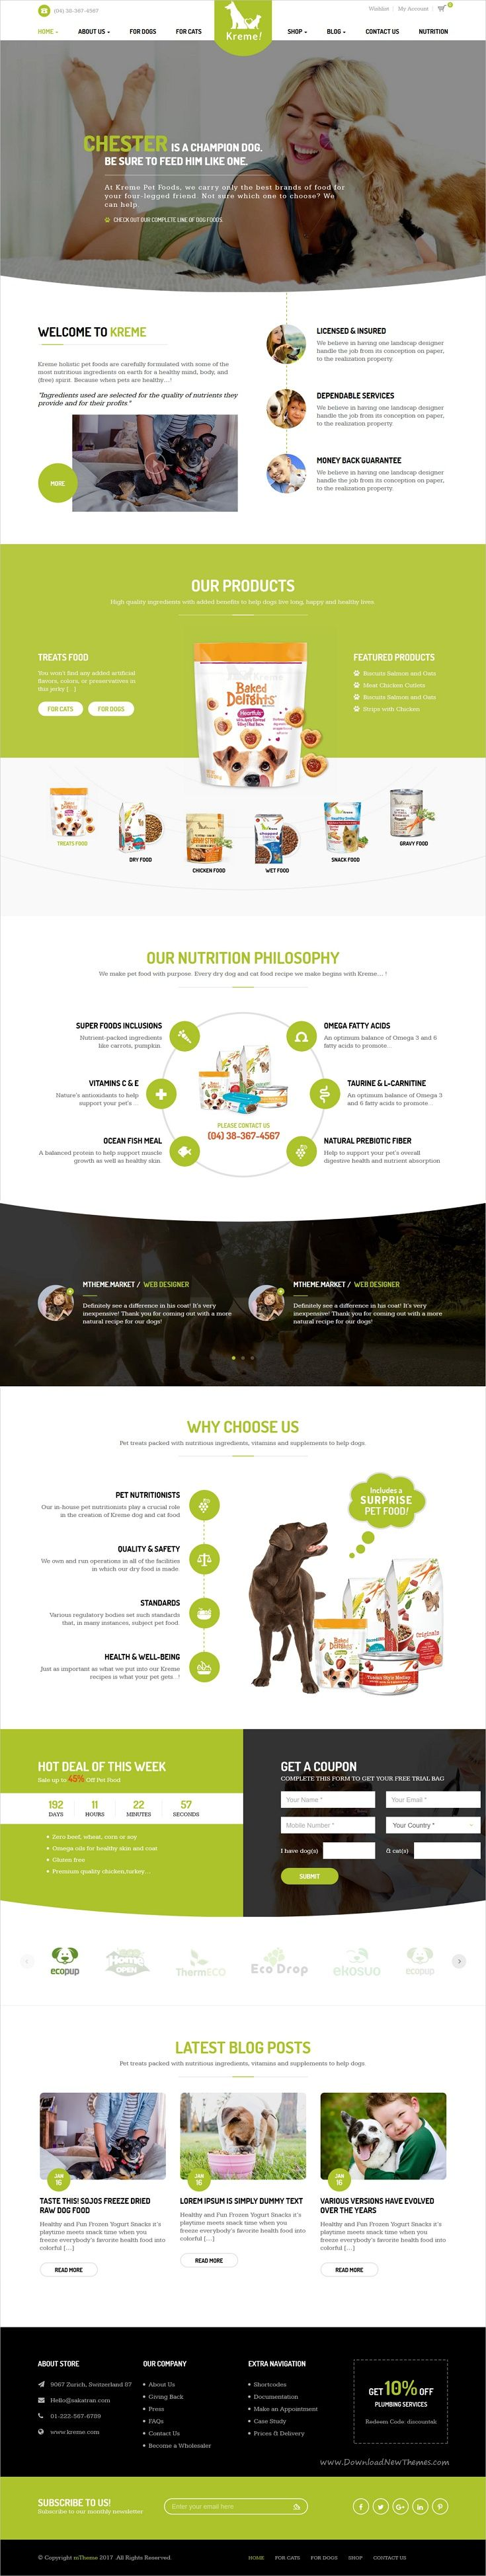 Kreme is a flexible flat & responsive #WordPress theme made specifically for #pet store owners website with 2 unique homepage layouts download now➩ https://themeforest.net/item/kreme-pet-shop/19337299?ref=Datasata